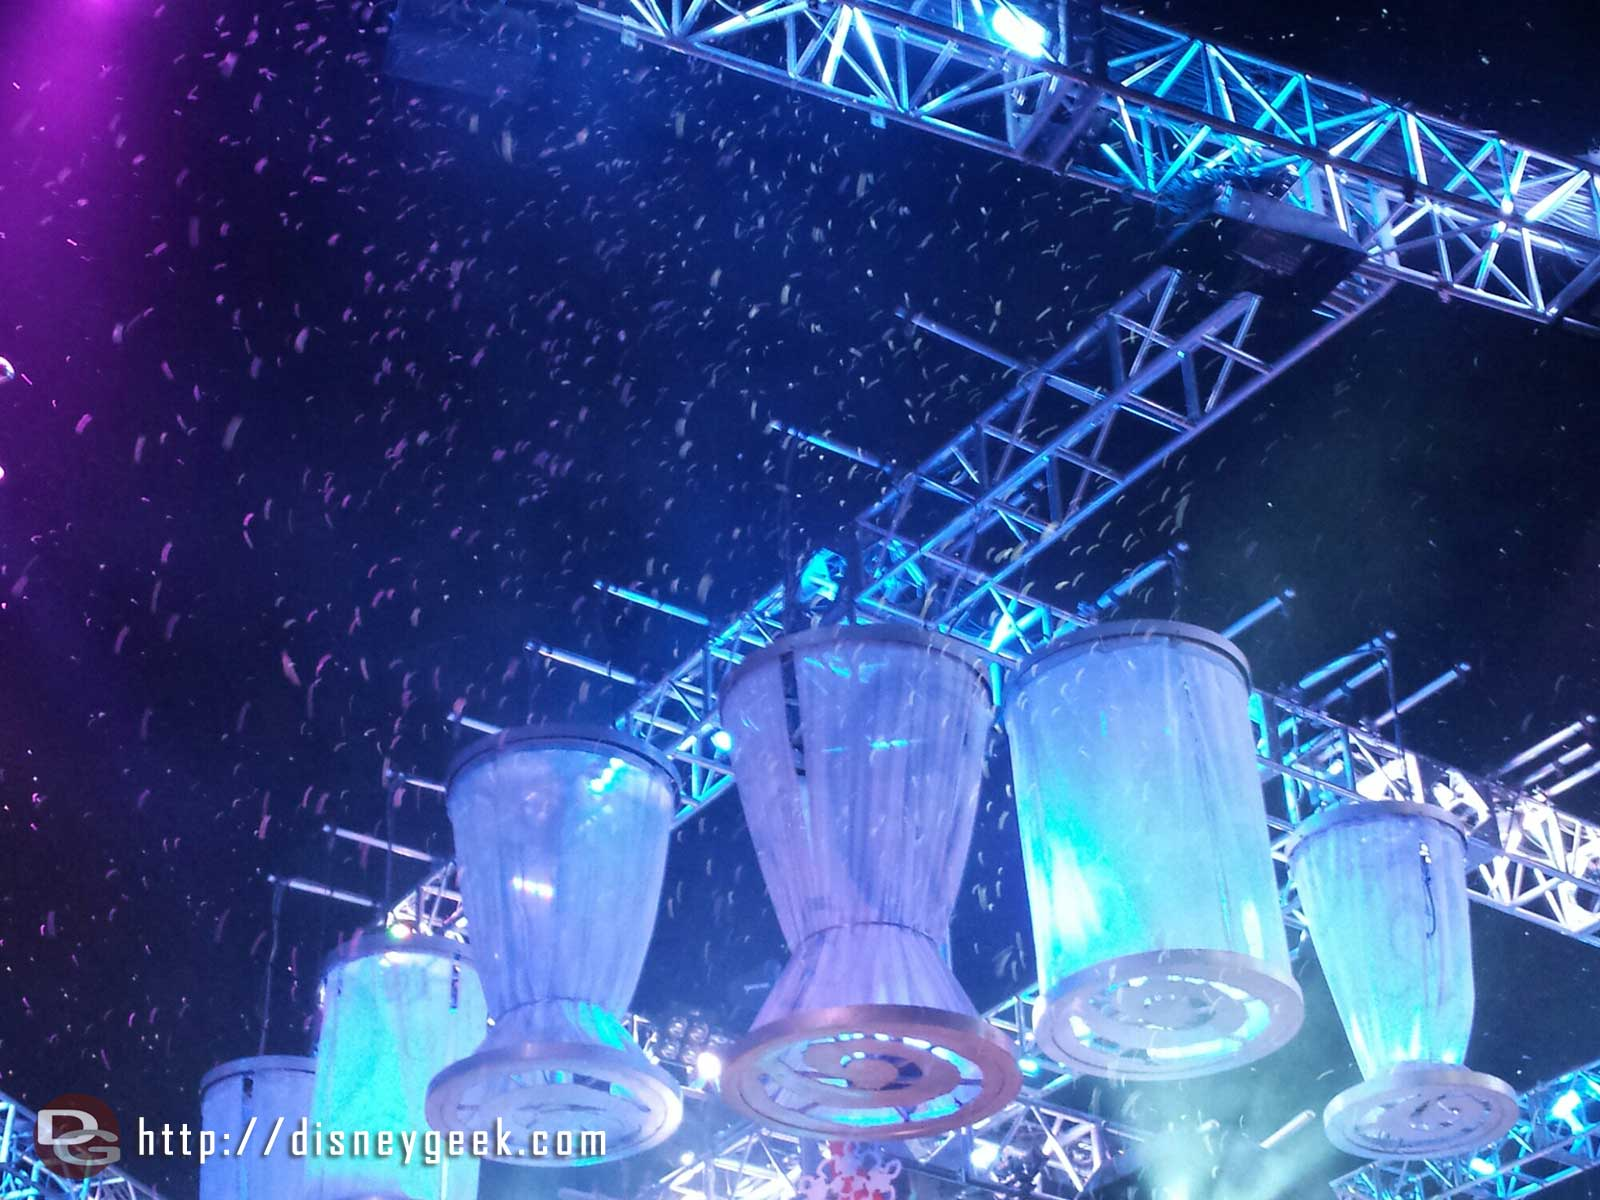 #MadTParty snow, as close as I want to get to snow